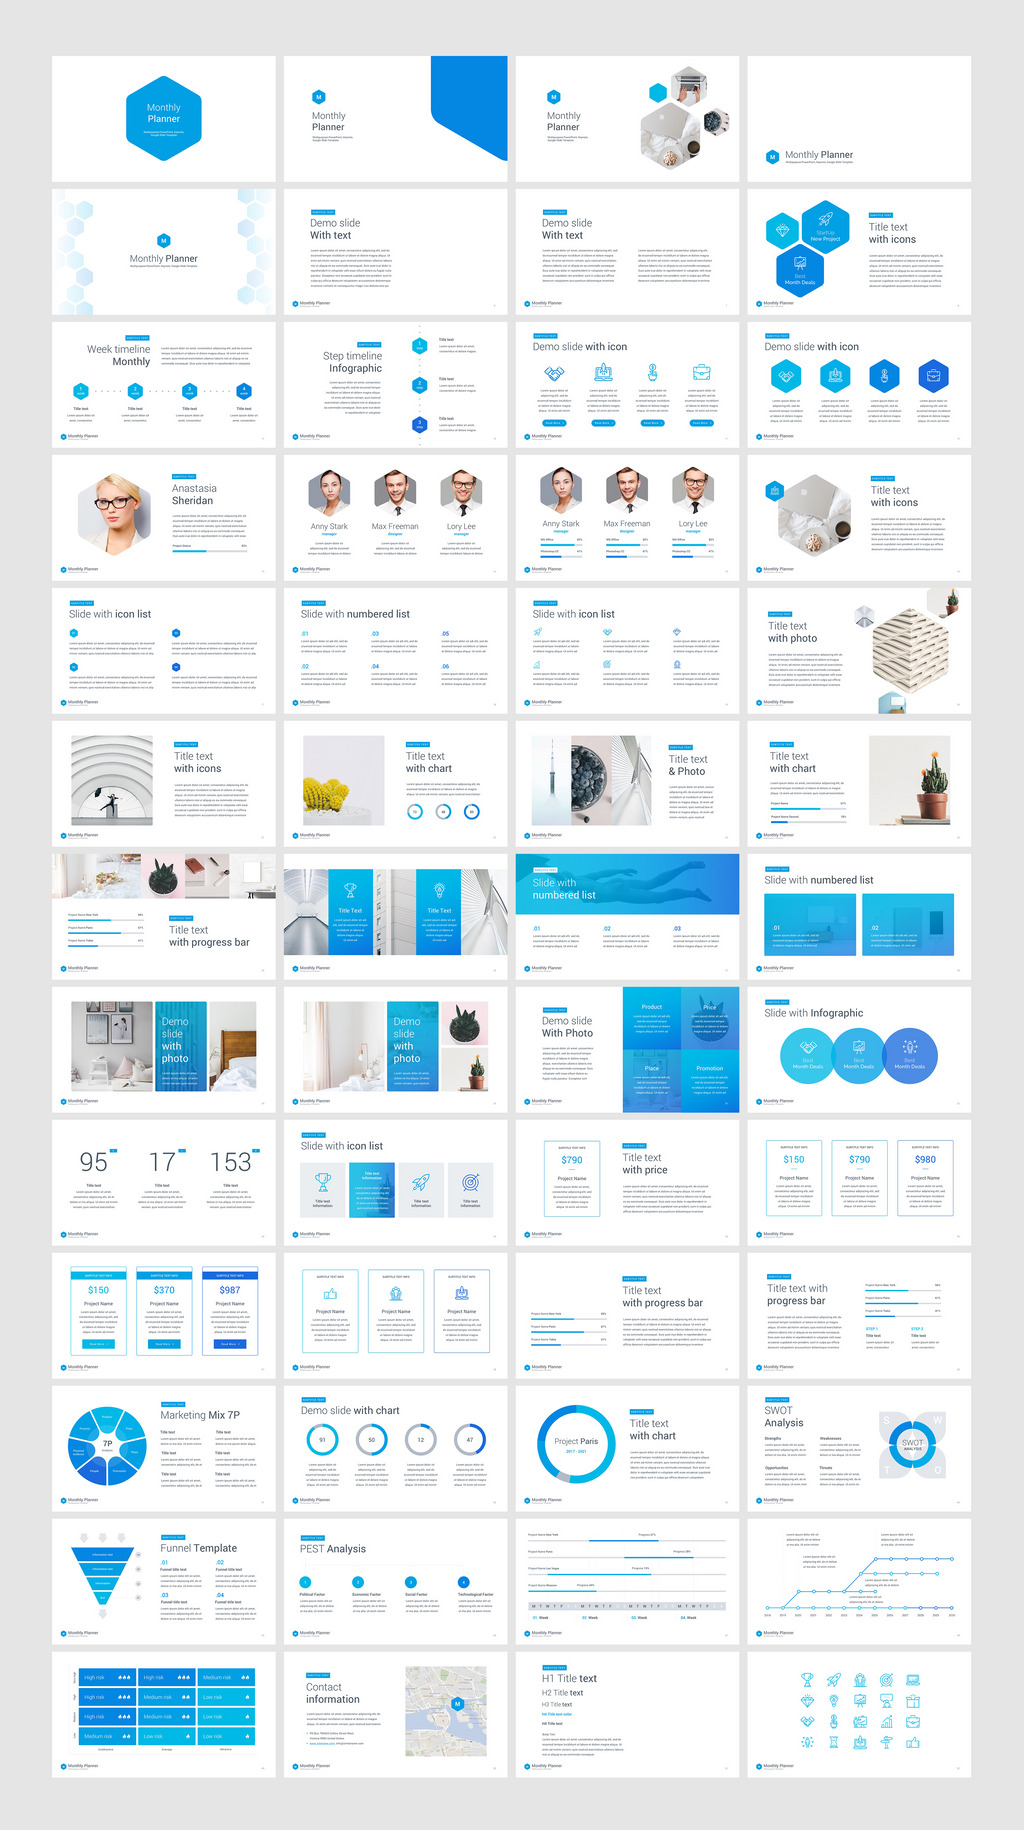 Monthly planner powerpoint template 66054 monthly planner powerpoint template professional marketing business tools 2 click to edit color text size full editable shape infographic no need toneelgroepblik Gallery